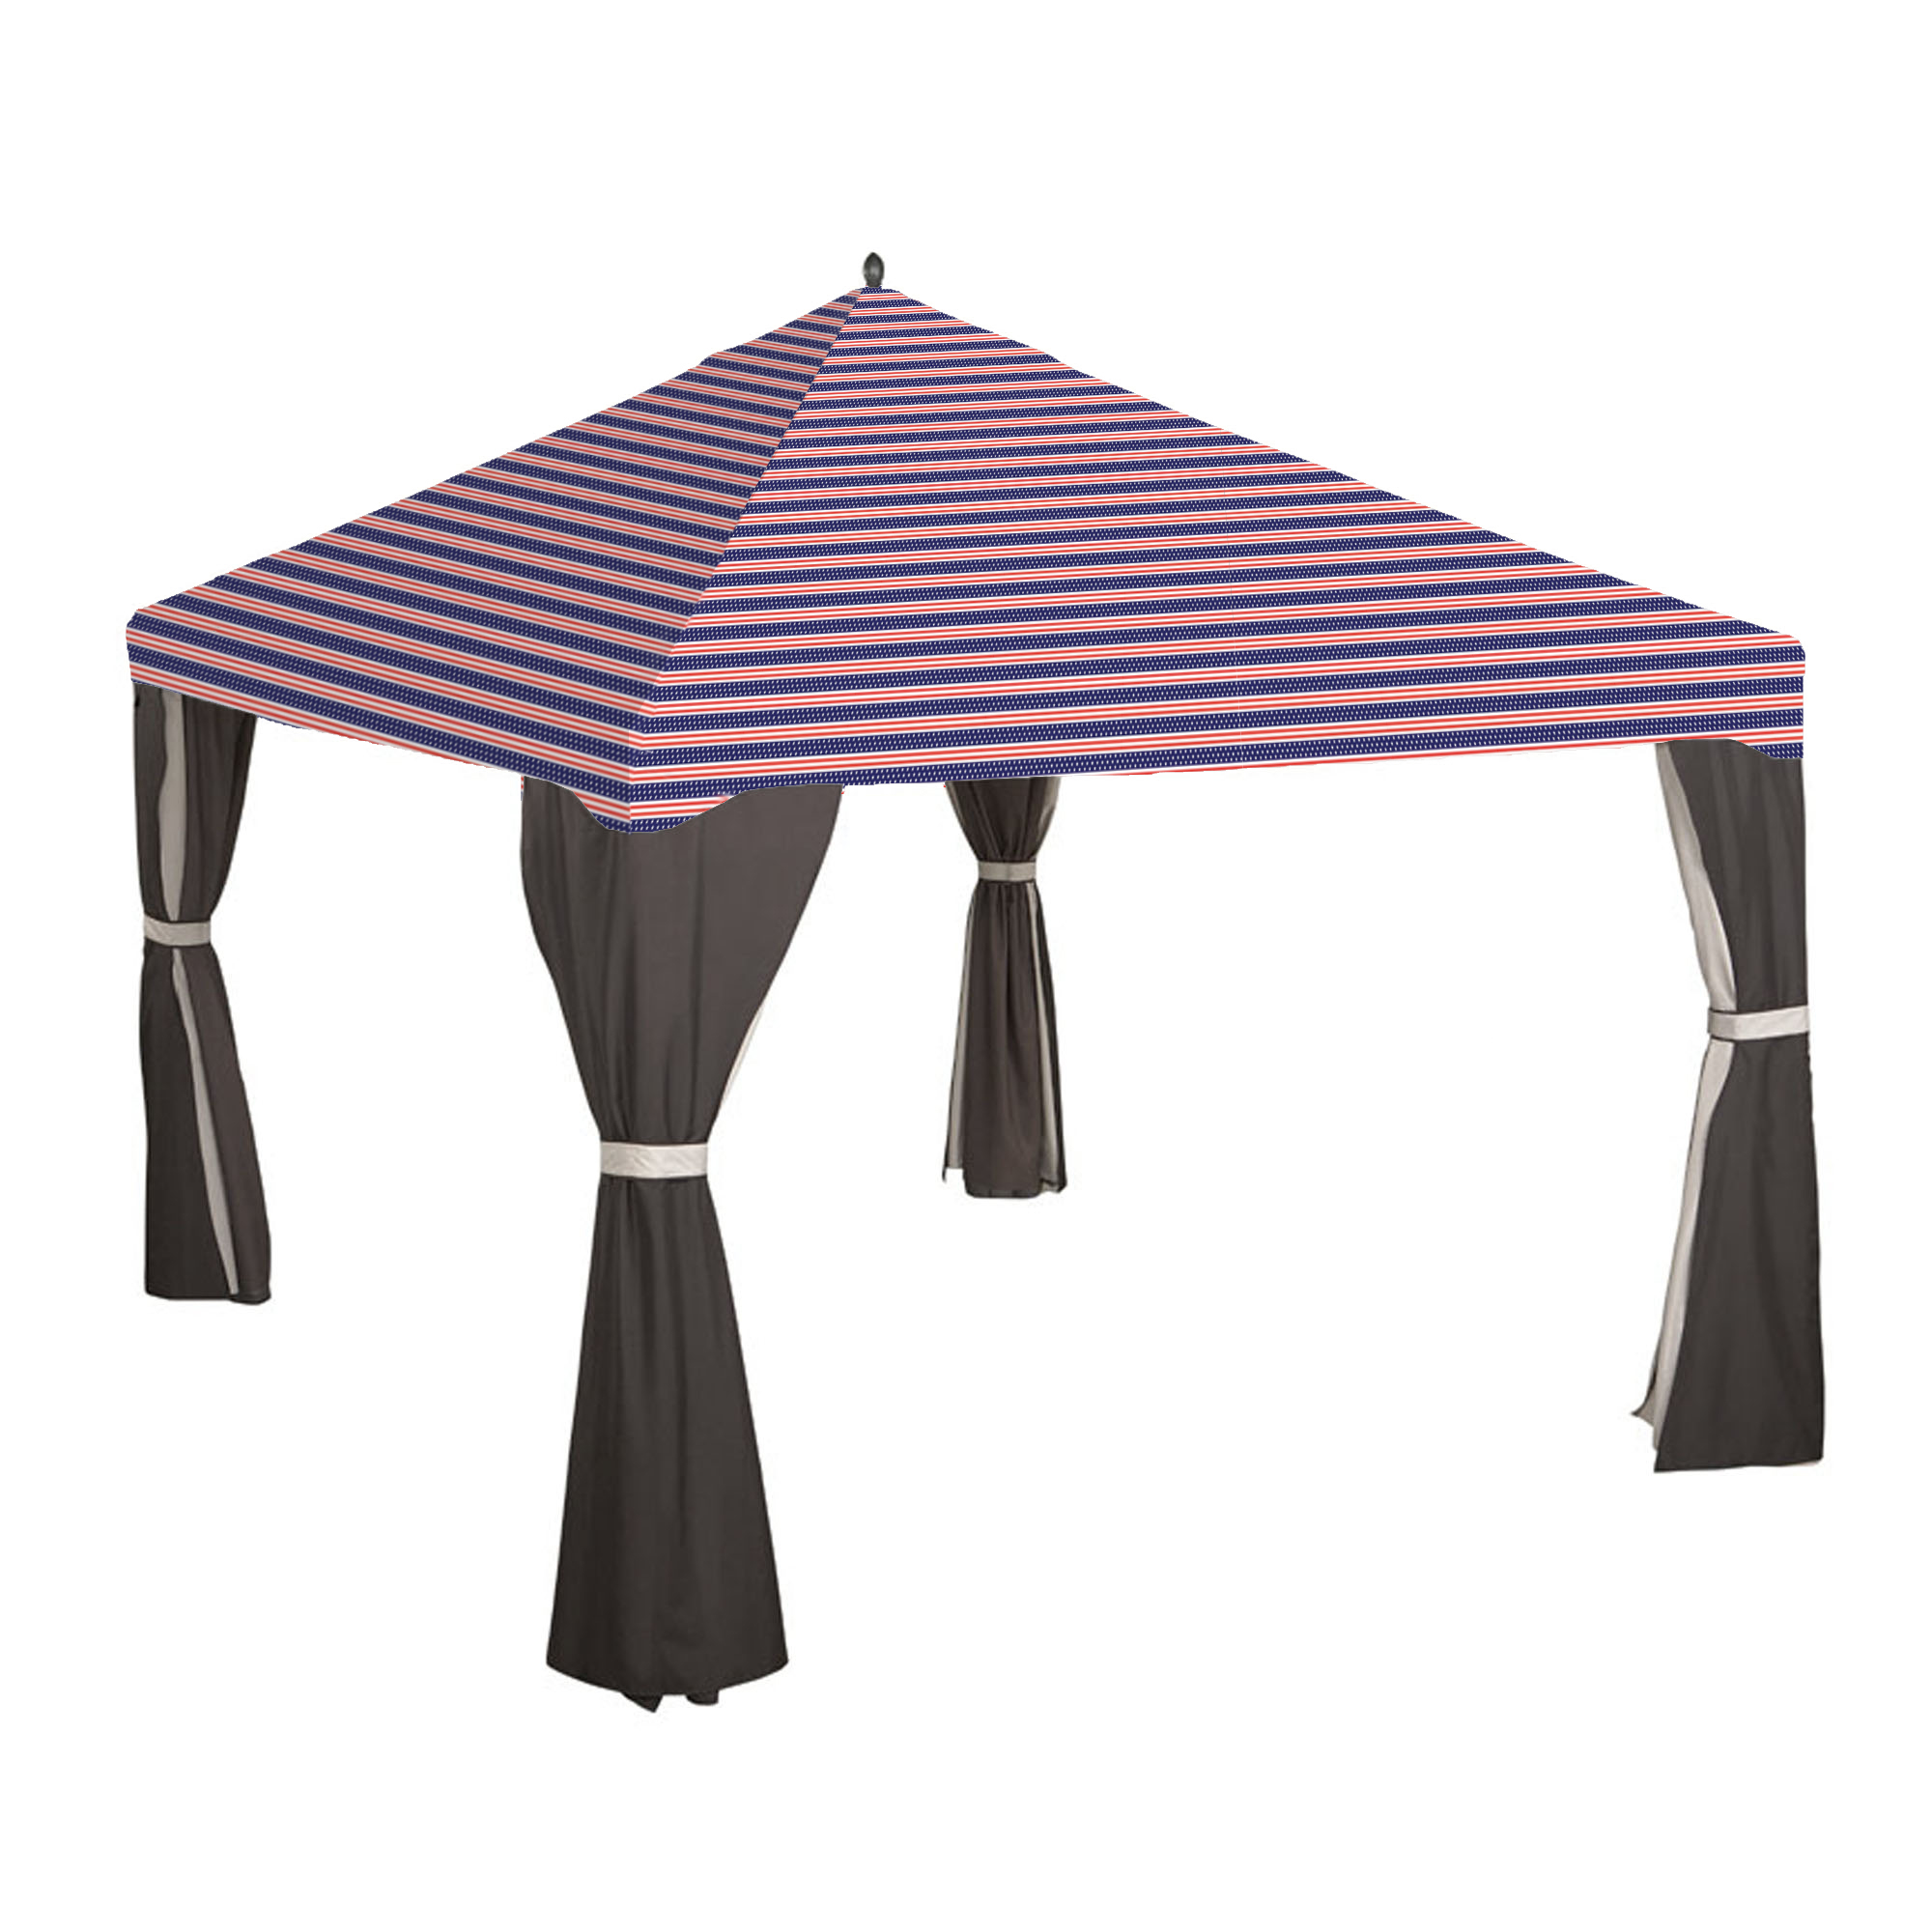 Lowes 10 X 12 Gazebo Replacement Canopy 8 Bar Garden Winds